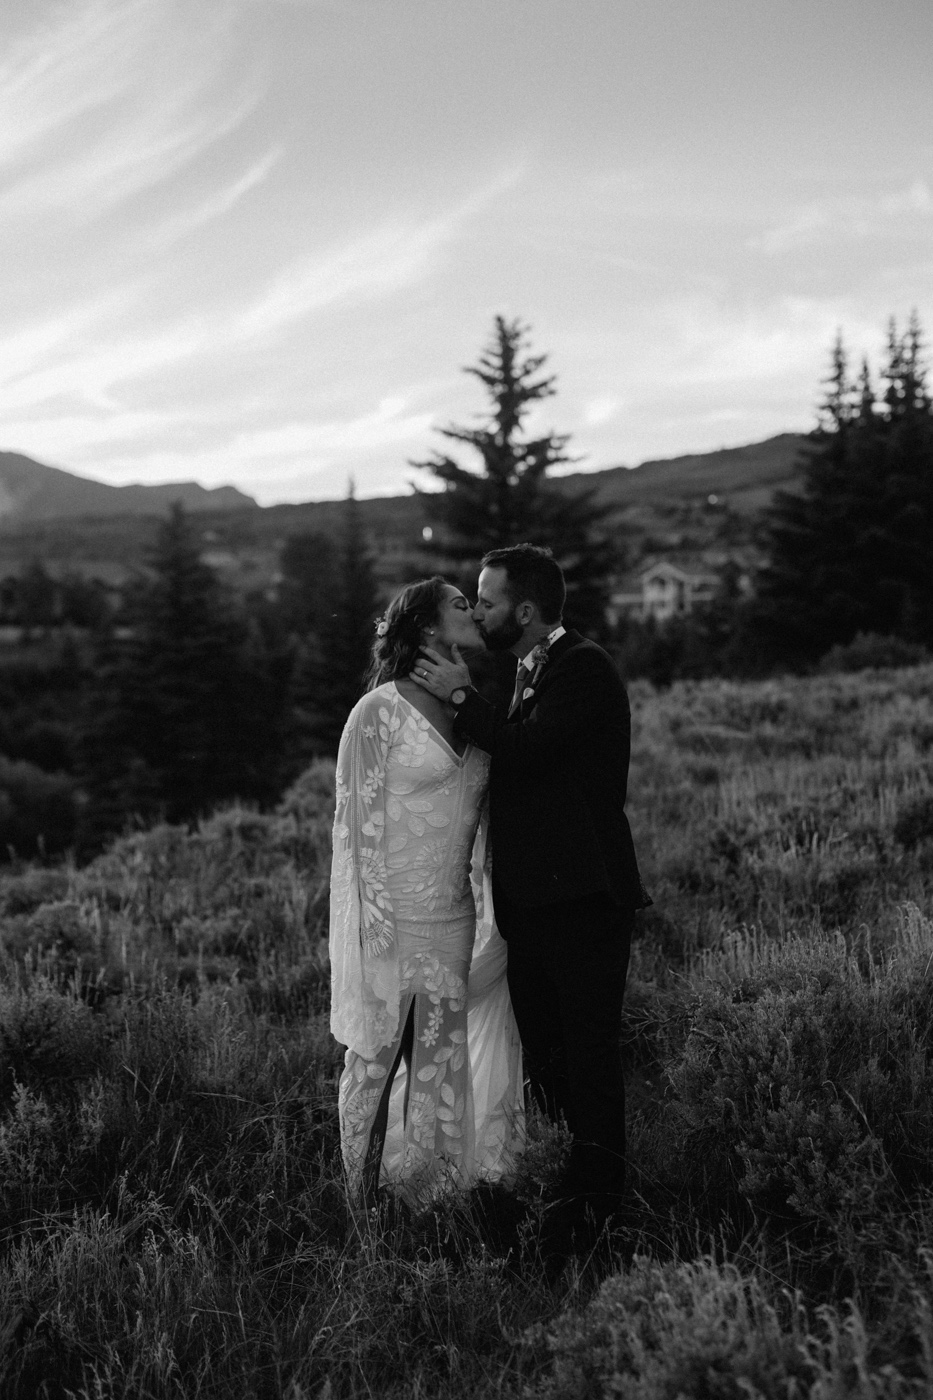 woods-walk-trail-crested-butte-colorado-wedding-134.jpg